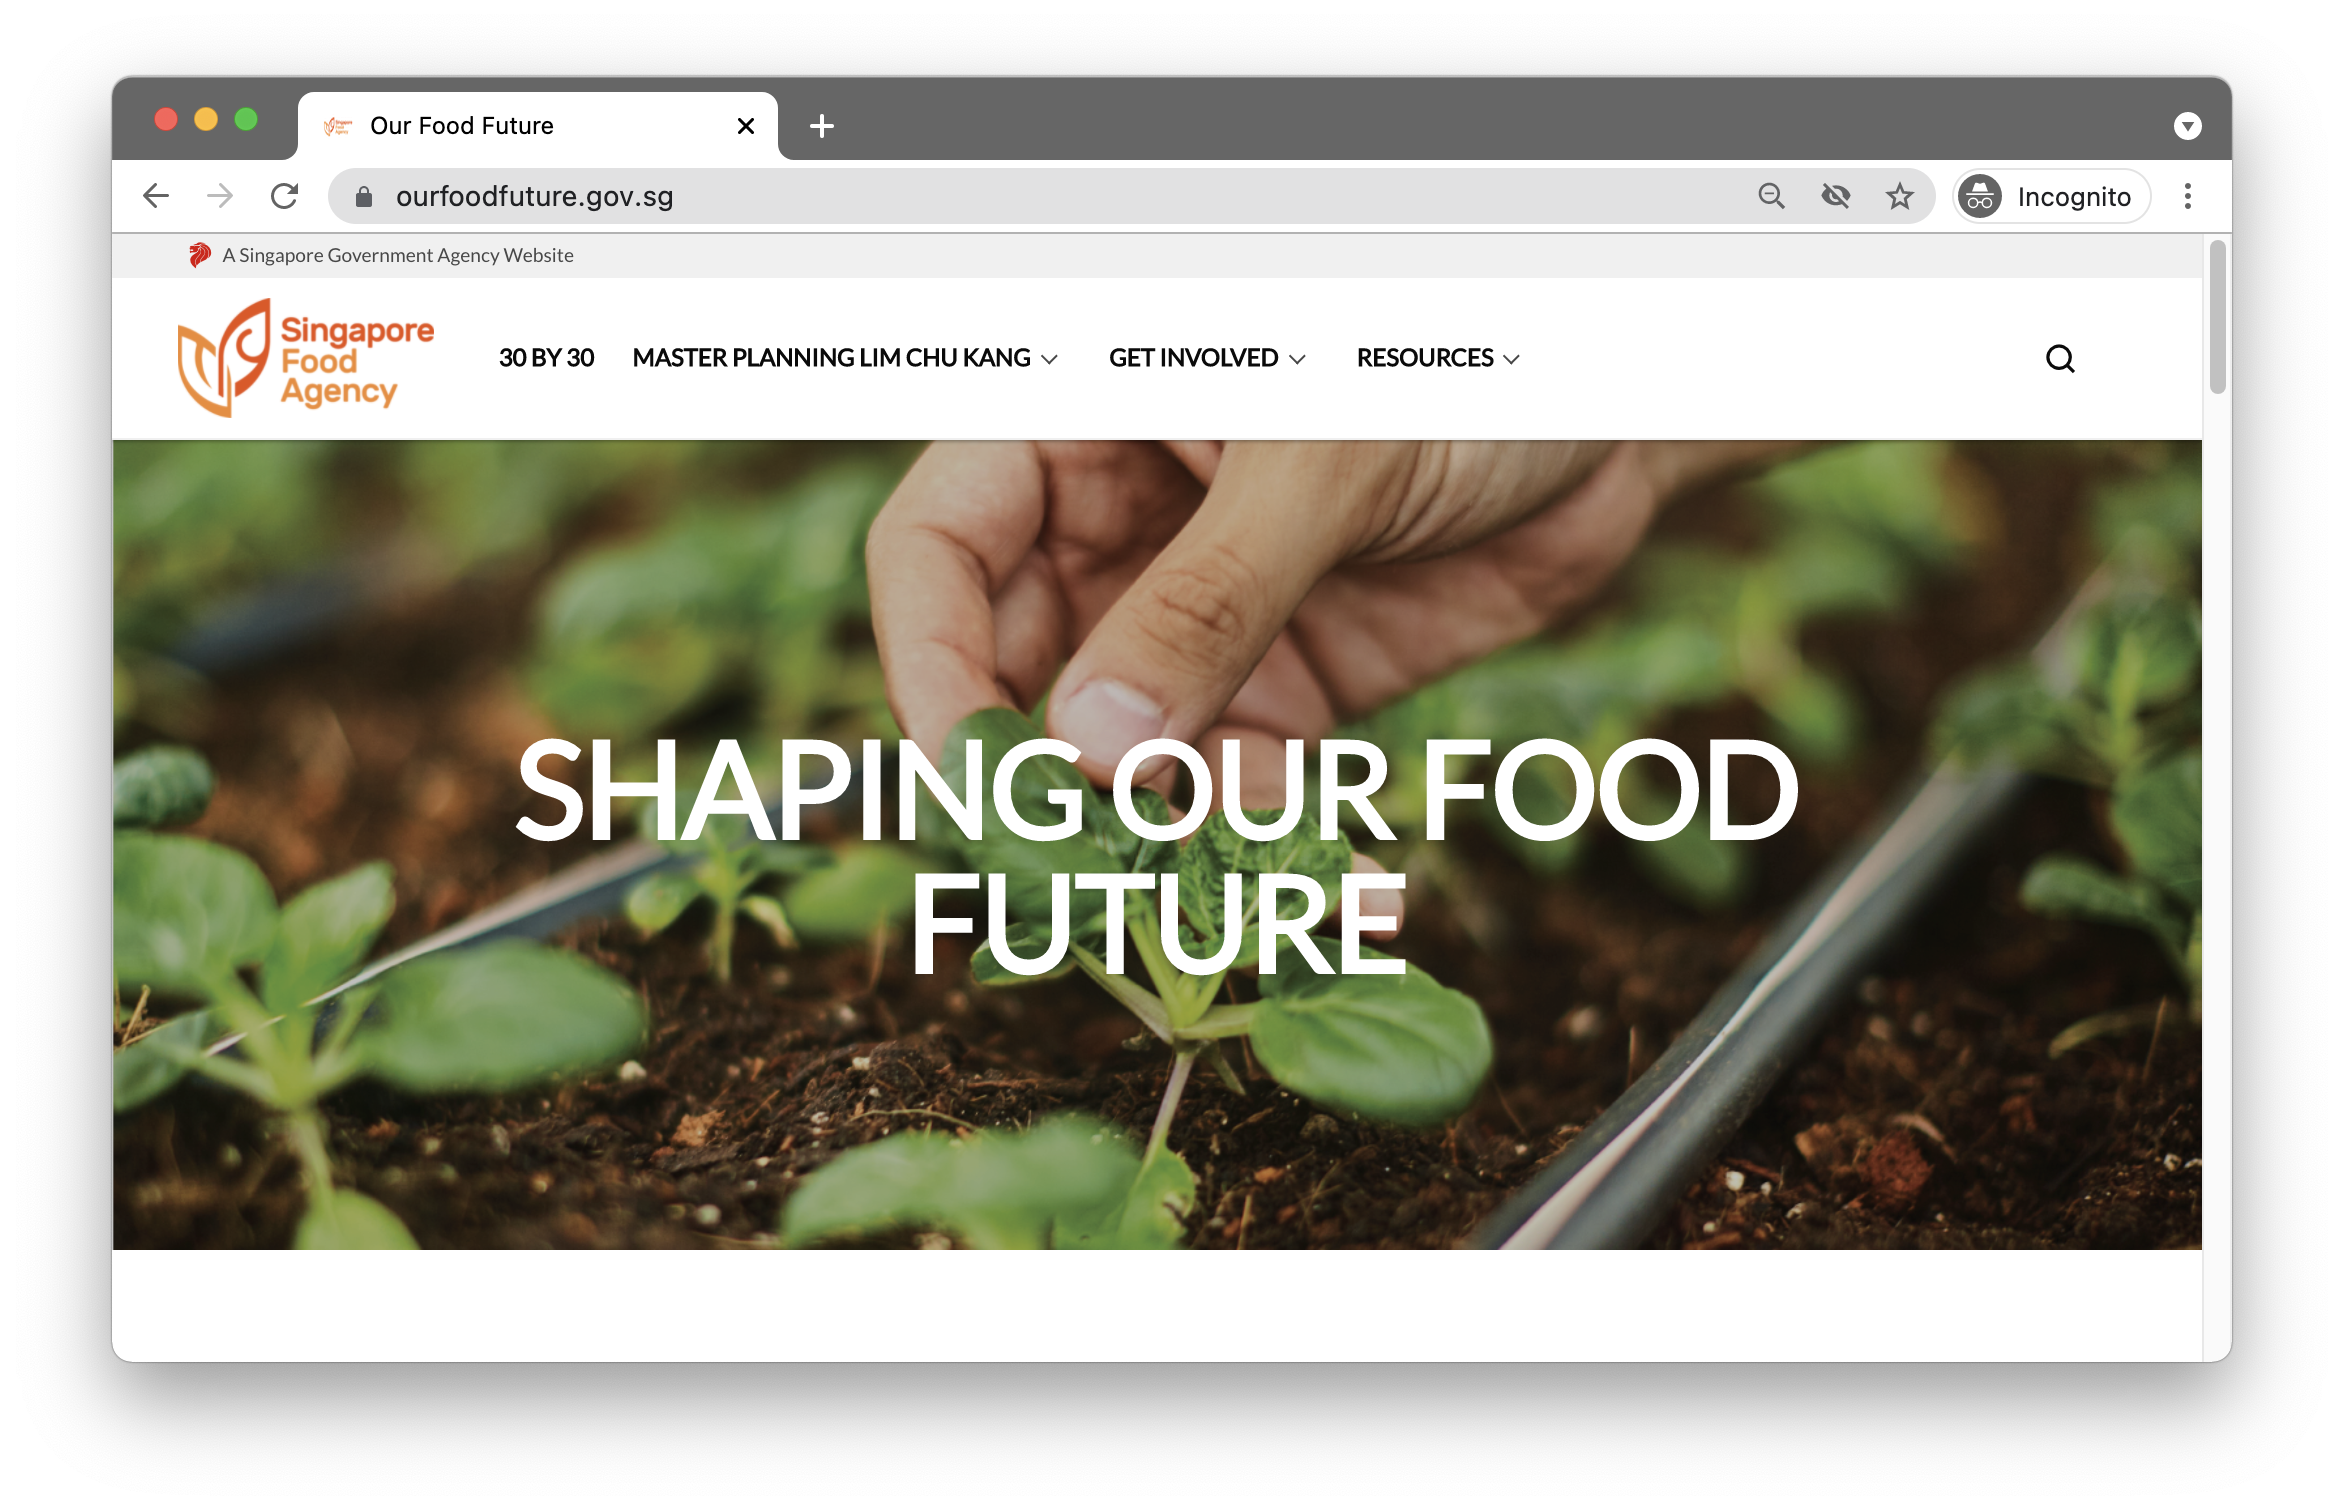 Our Food Future website